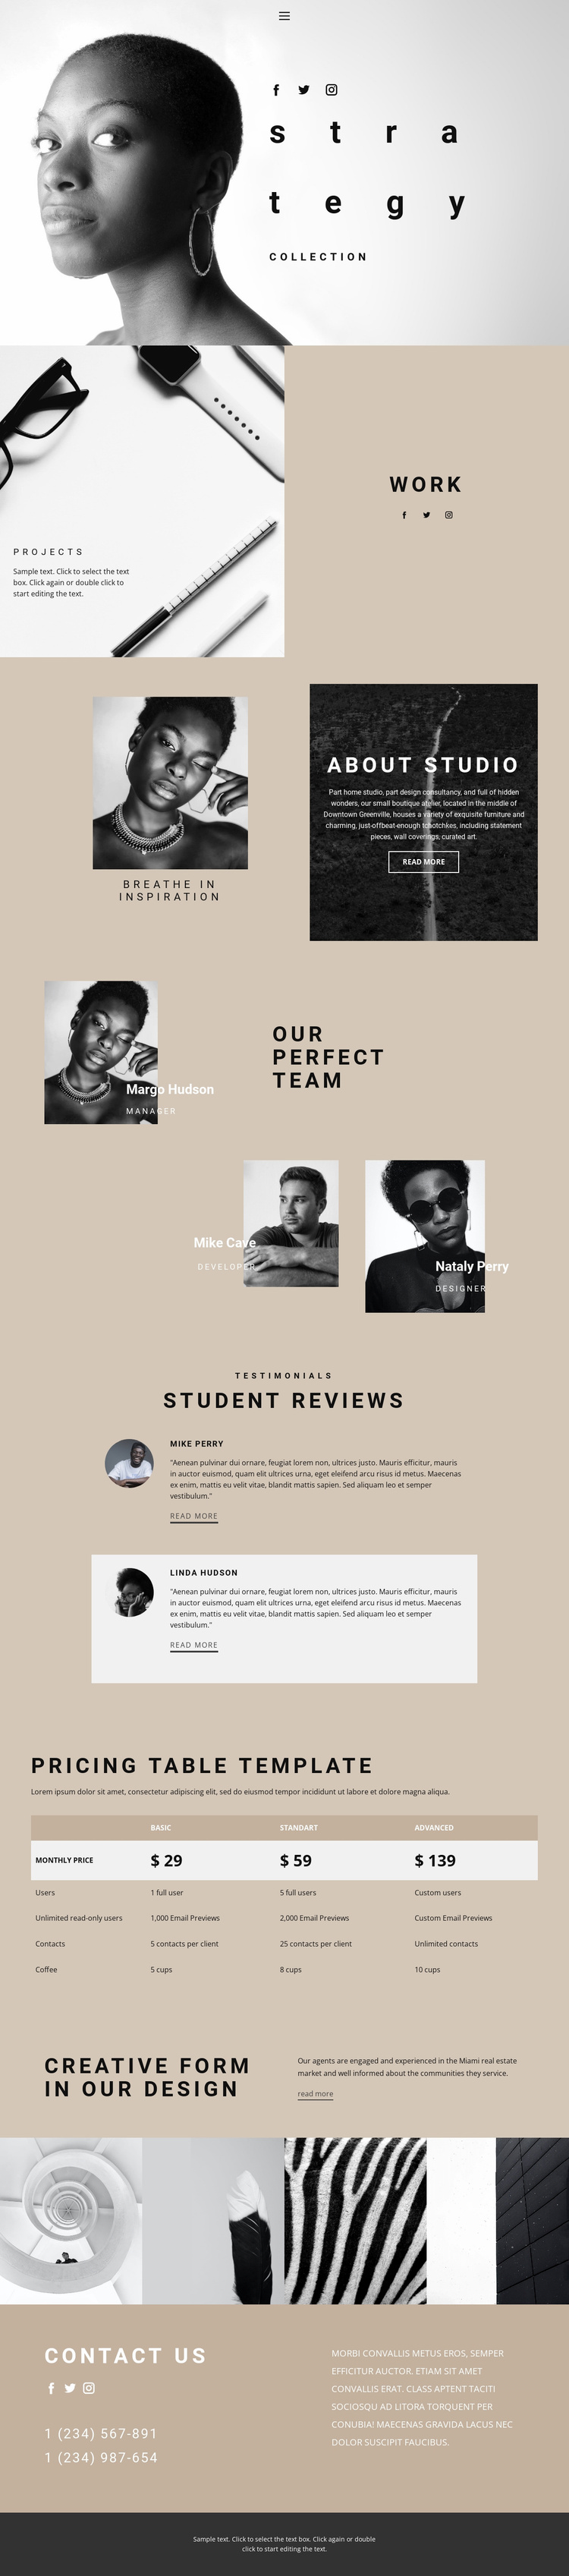 Strategy and grow Website Template